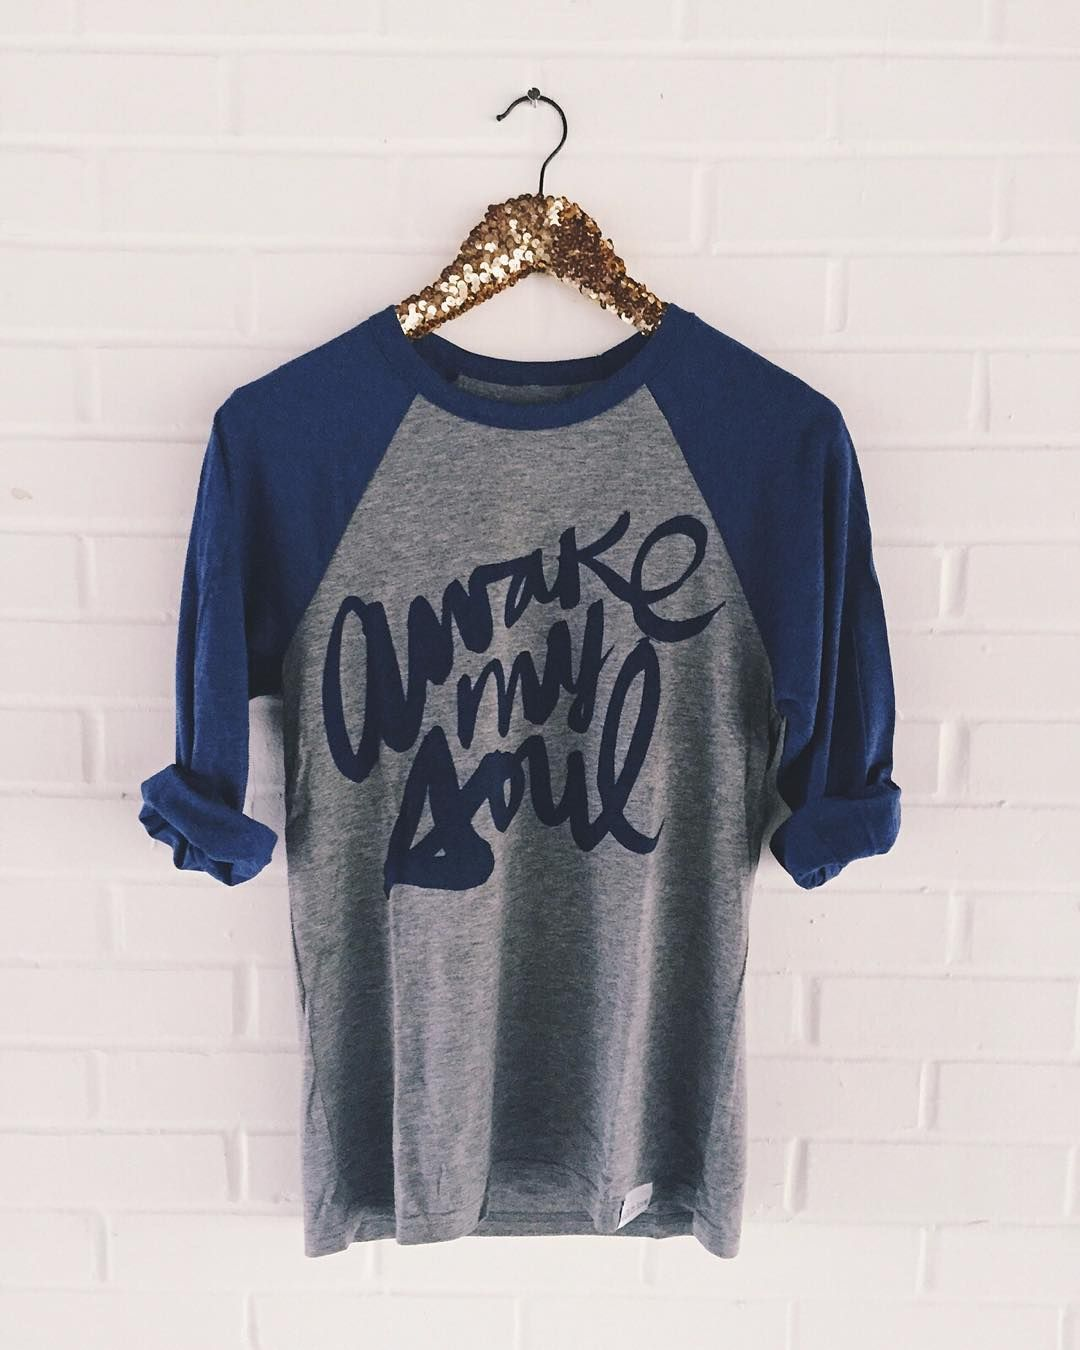 Baseballs tees are literally one of our favorite parts of fall. :) #walkinlove